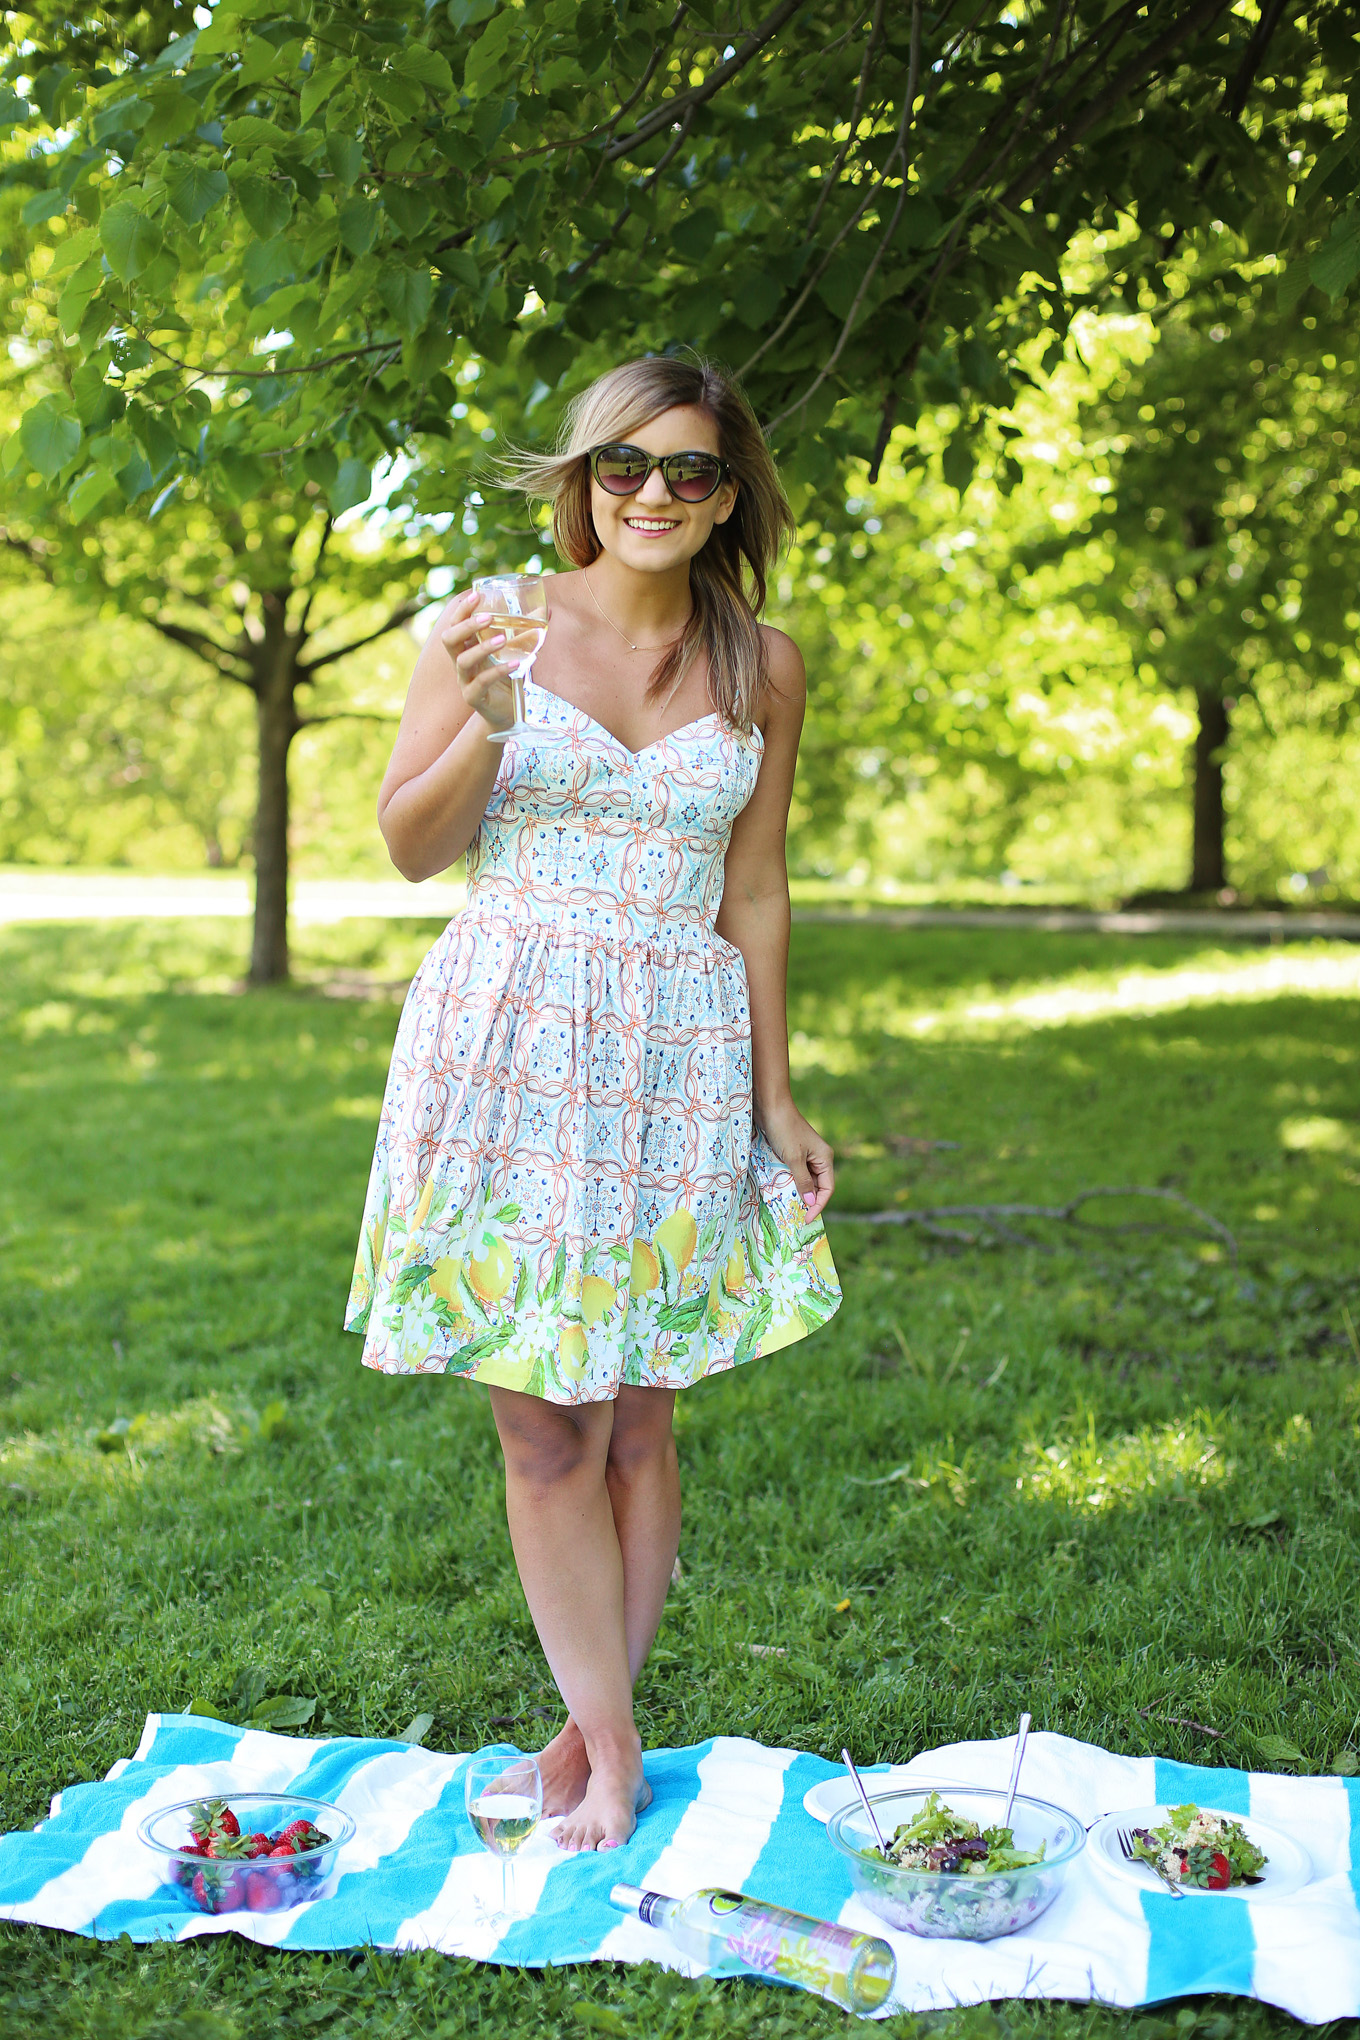 Ecco Domani x Christian Siriano Pinot Grigio + the cutest Lemon Print Dress - Lake Shore Lady